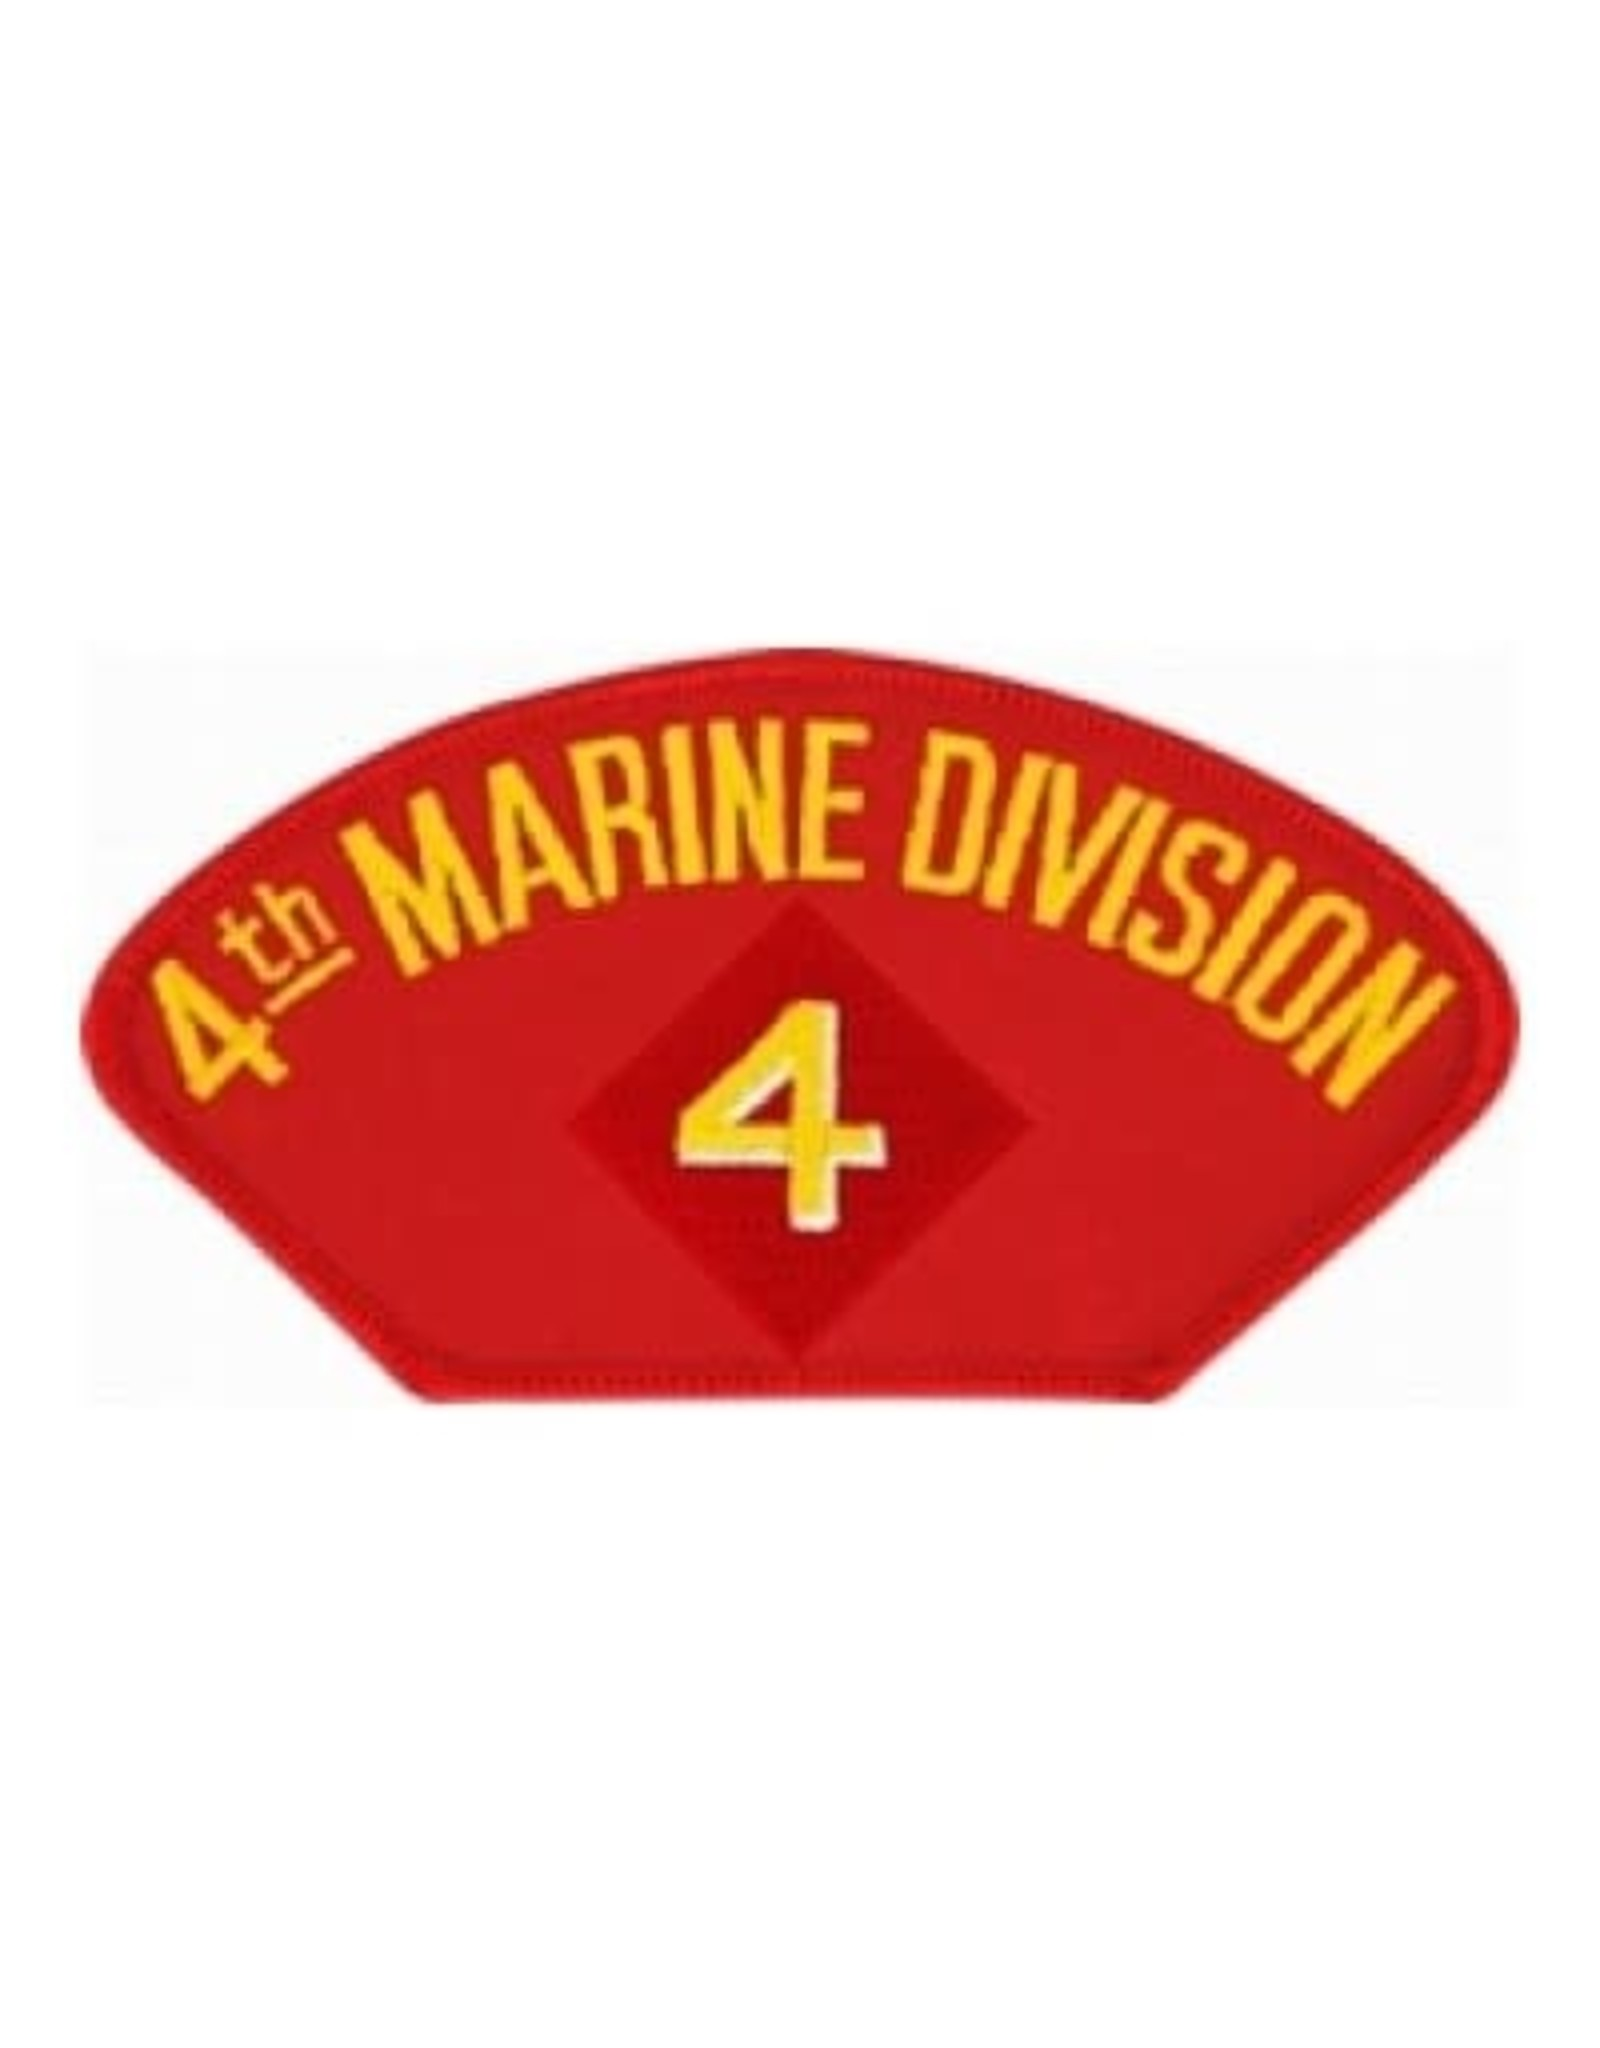 """MidMil Embroidered 4th Marine Division Patch with Emblem 5.2"""" wide x 2.7"""" high Red"""